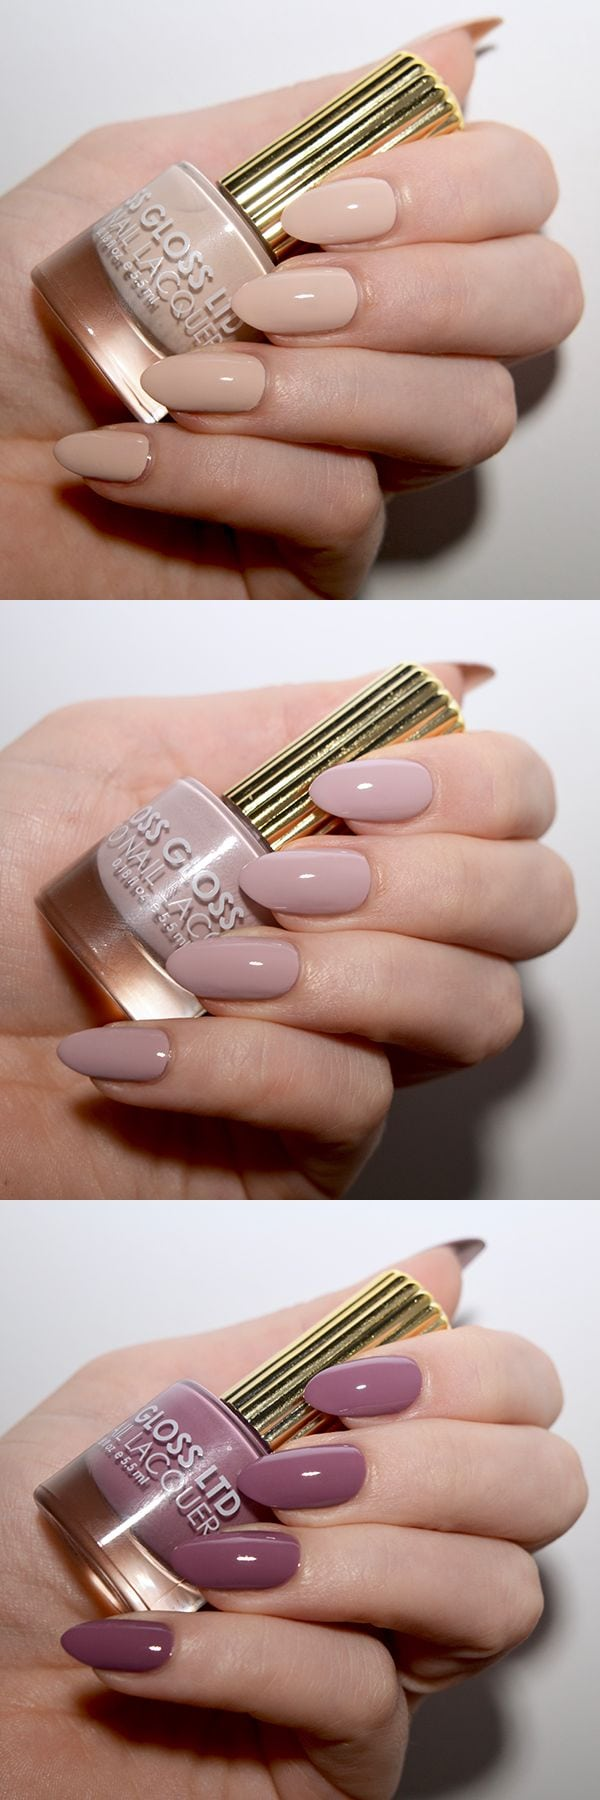 Floss Gloss nail varnishes – perfect manicure colours for spring! Source by jannyhoekstra   …